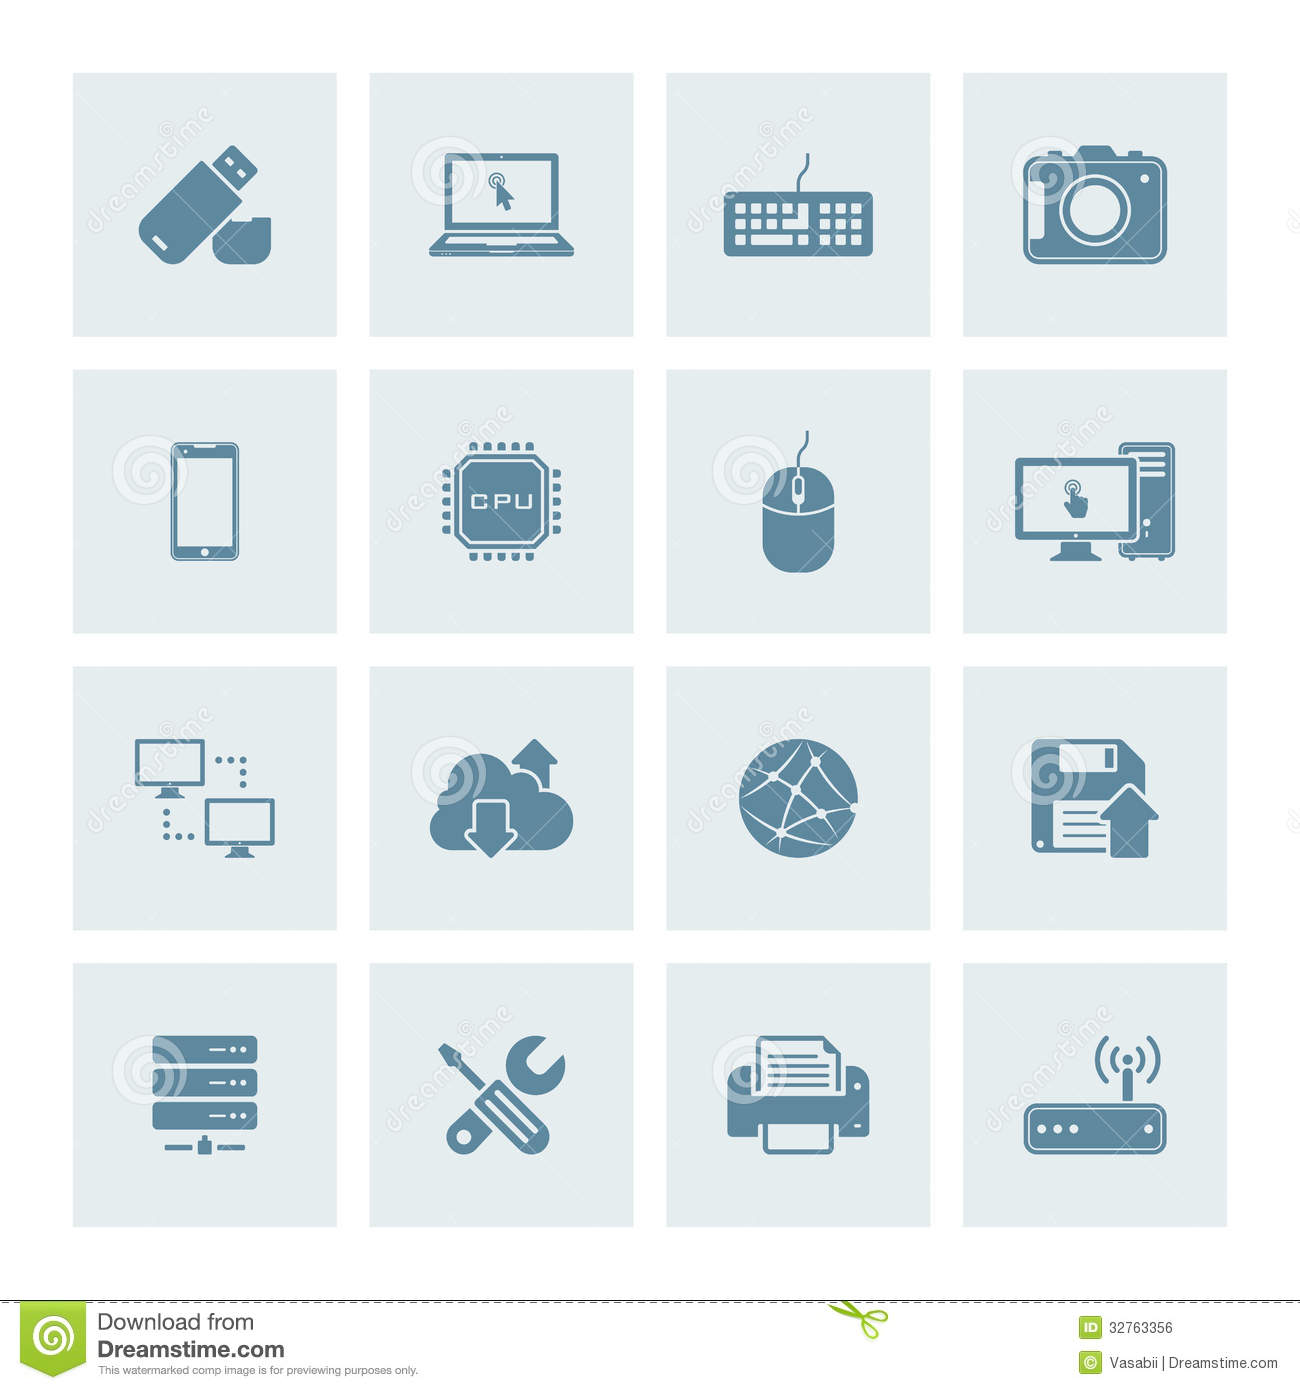 Free technology icon vector 277295 | download technology icon.